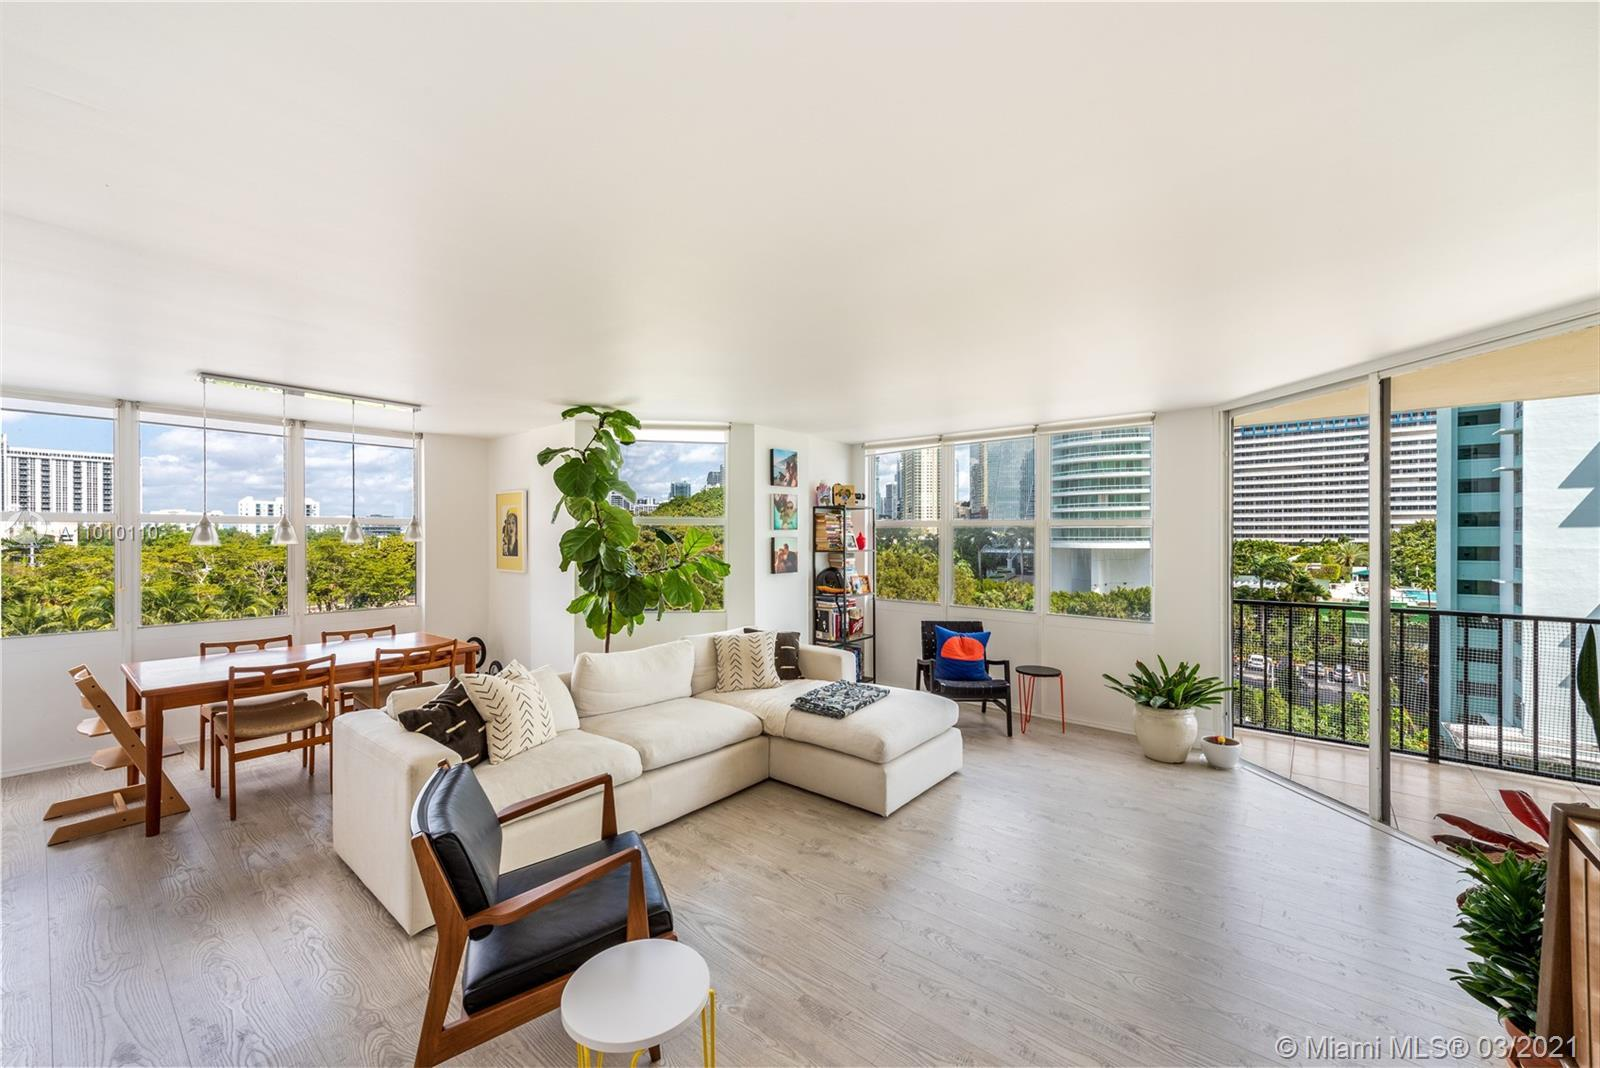 Gorgeous and bright corner unit! All rooms have generous windows allowing light to come in throughou